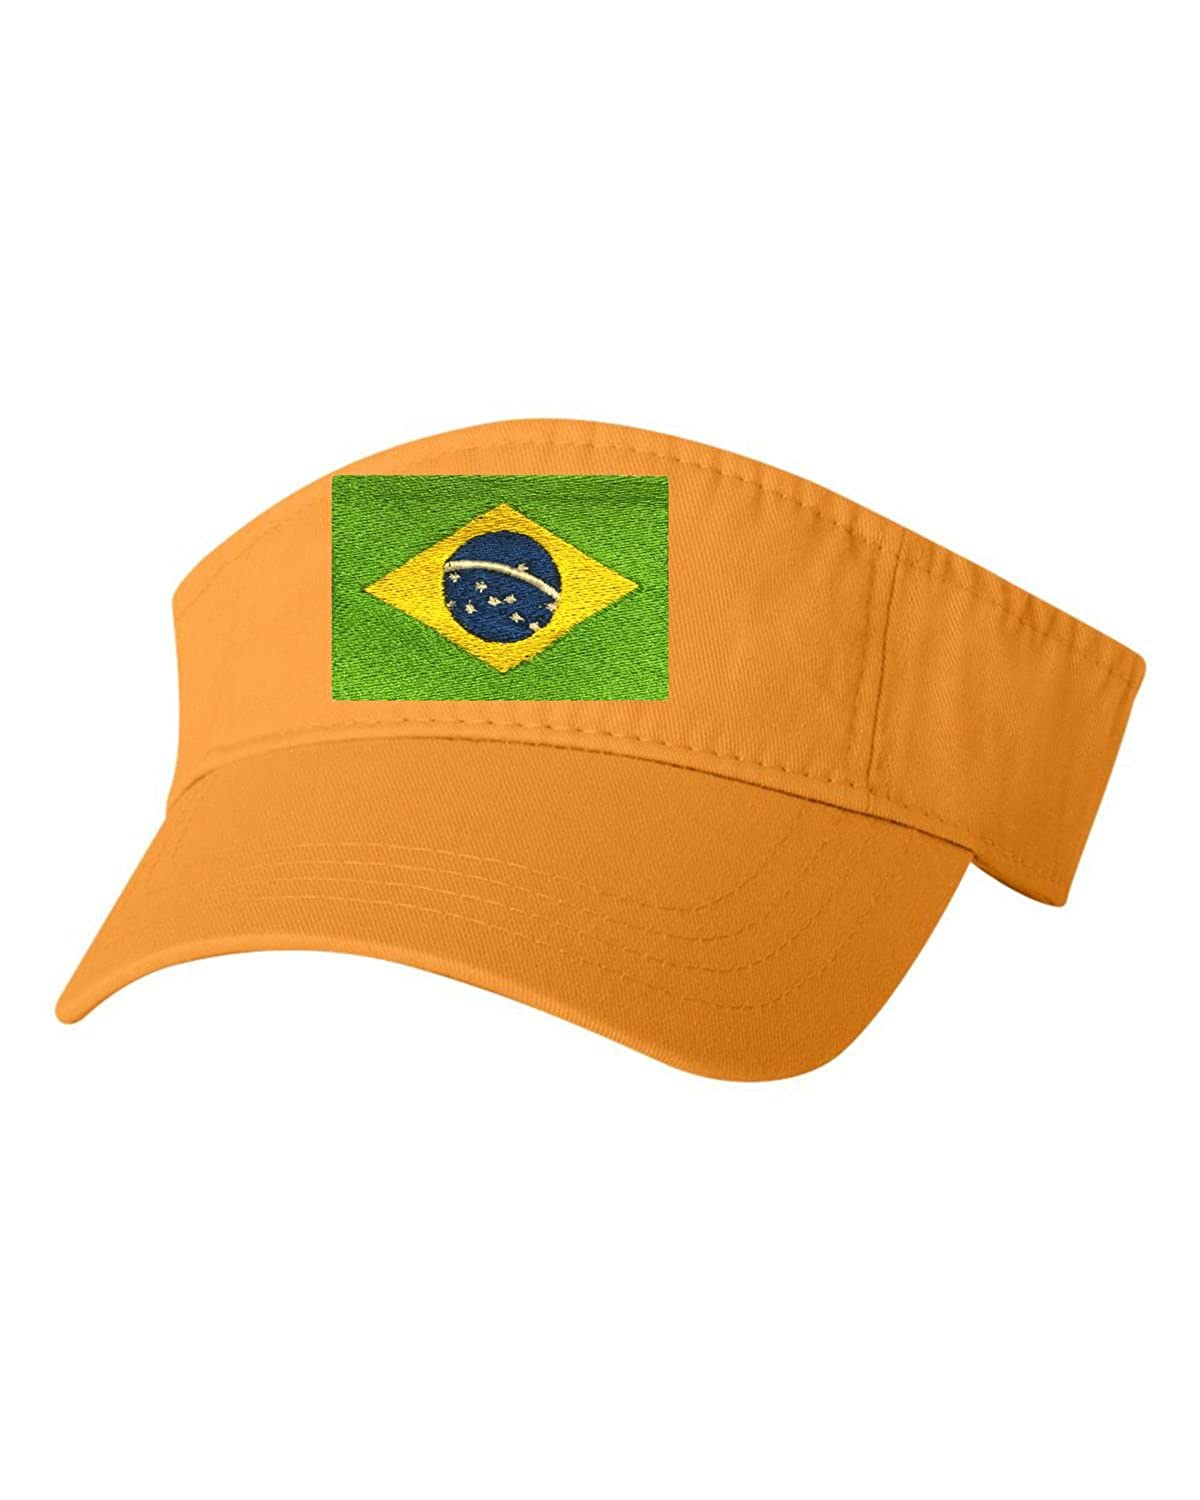 77d11233687 Go All Out Adult Brazil Flag Embroidered Visor Dad Hat  BRAZILFLAGEMB VIS BLB ADJ